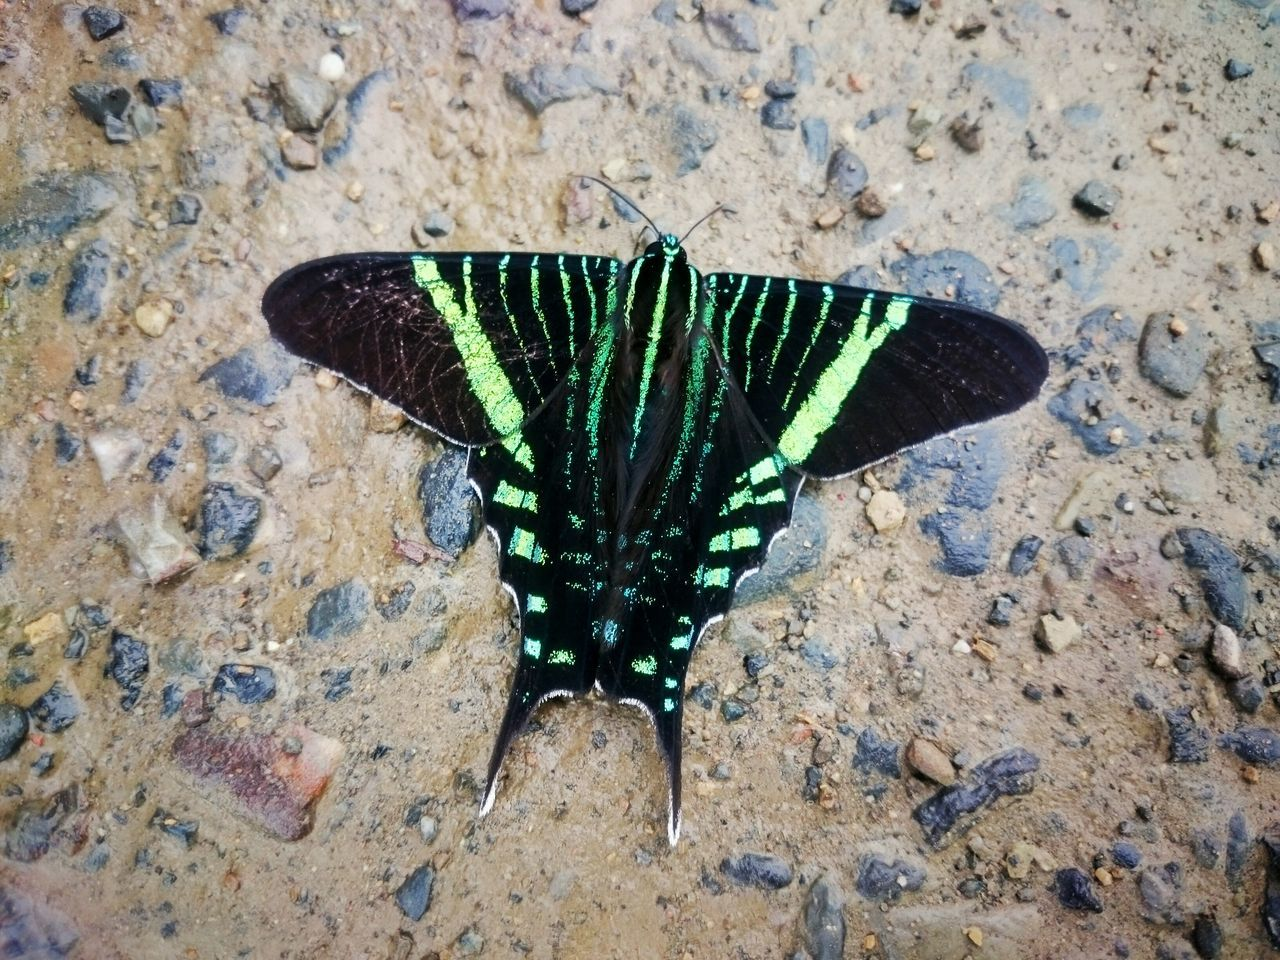 insect, animals in the wild, animal themes, one animal, butterfly - insect, animal wing, animal wildlife, high angle view, butterfly, no people, day, close-up, outdoors, nature, spread wings, animal markings, beauty in nature